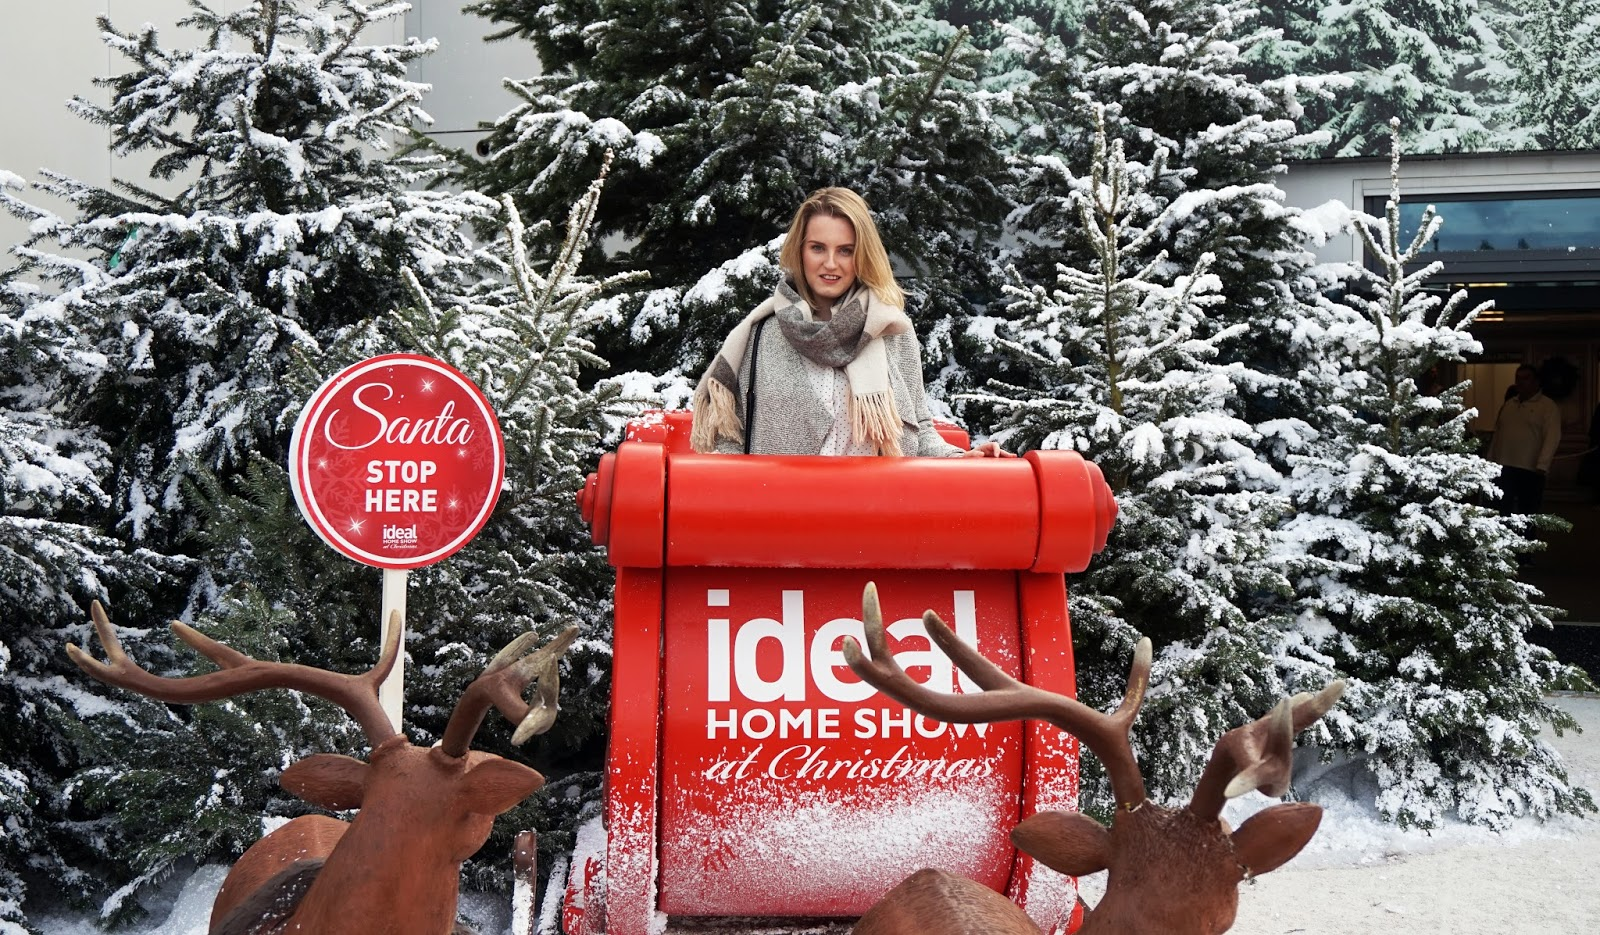 Ideal Home Show At Christmas 2016